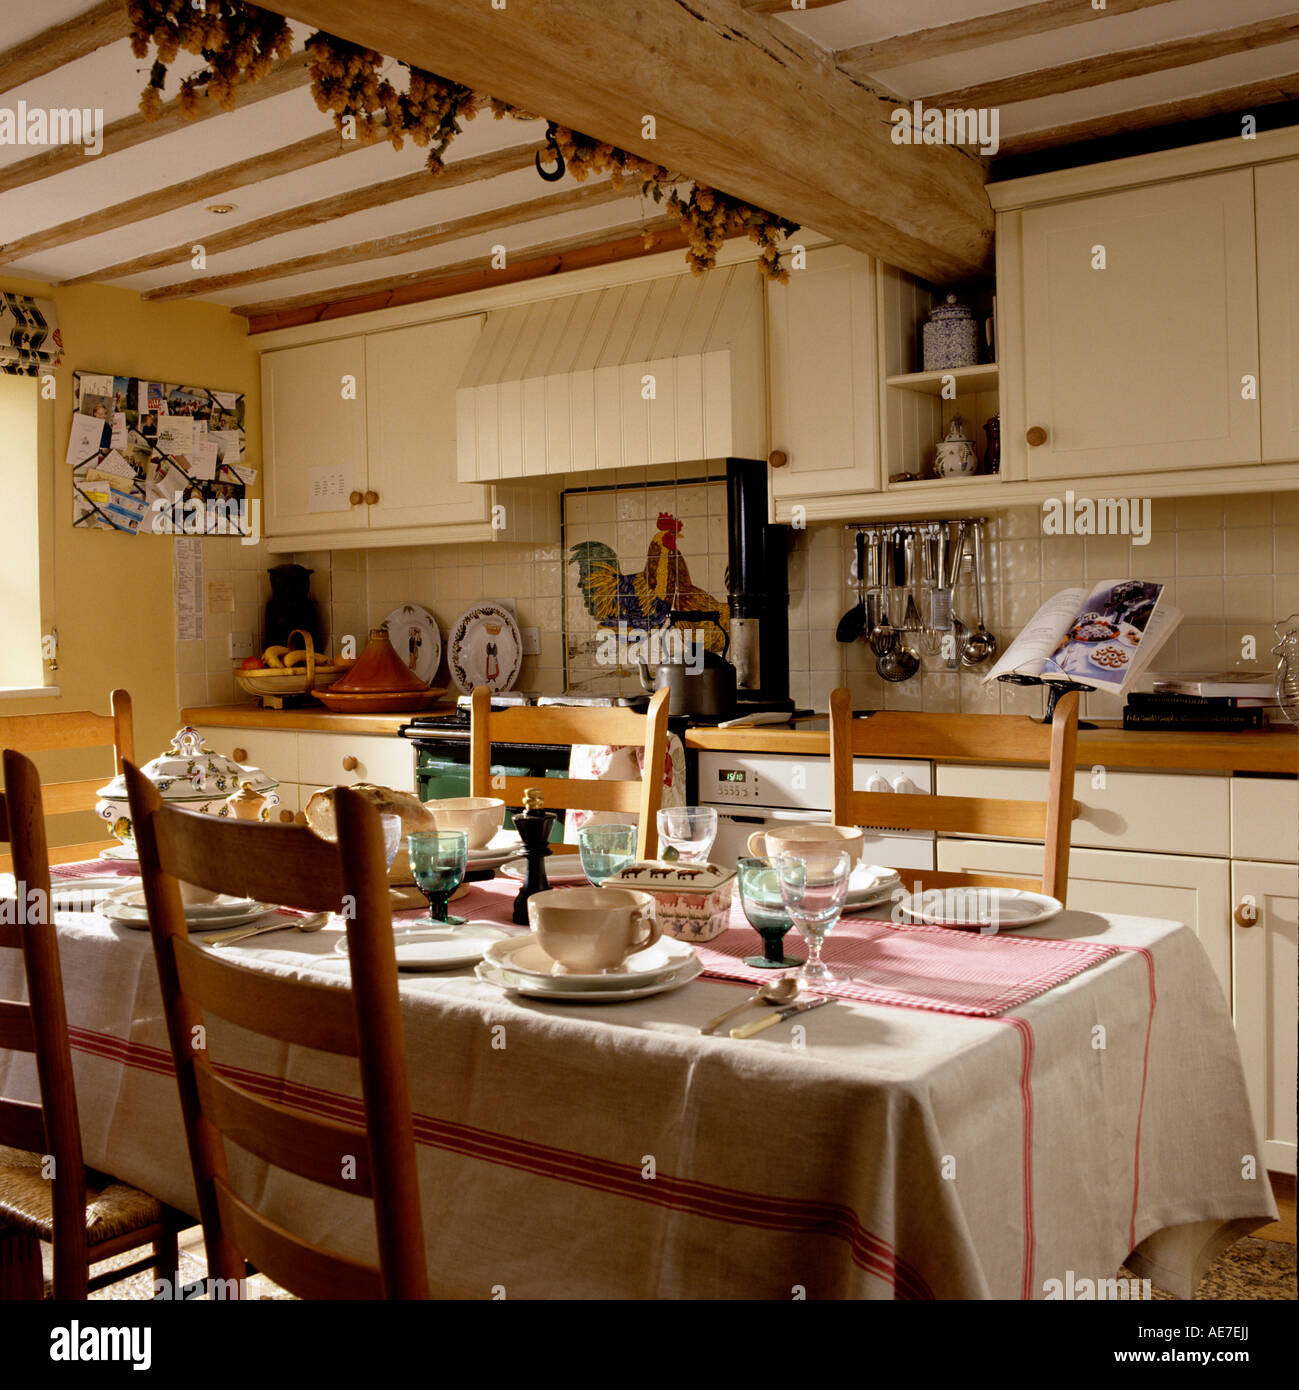 English Cottage Kitchen Designs: Country Kitchen Of An English Cottage With Wooden Beams